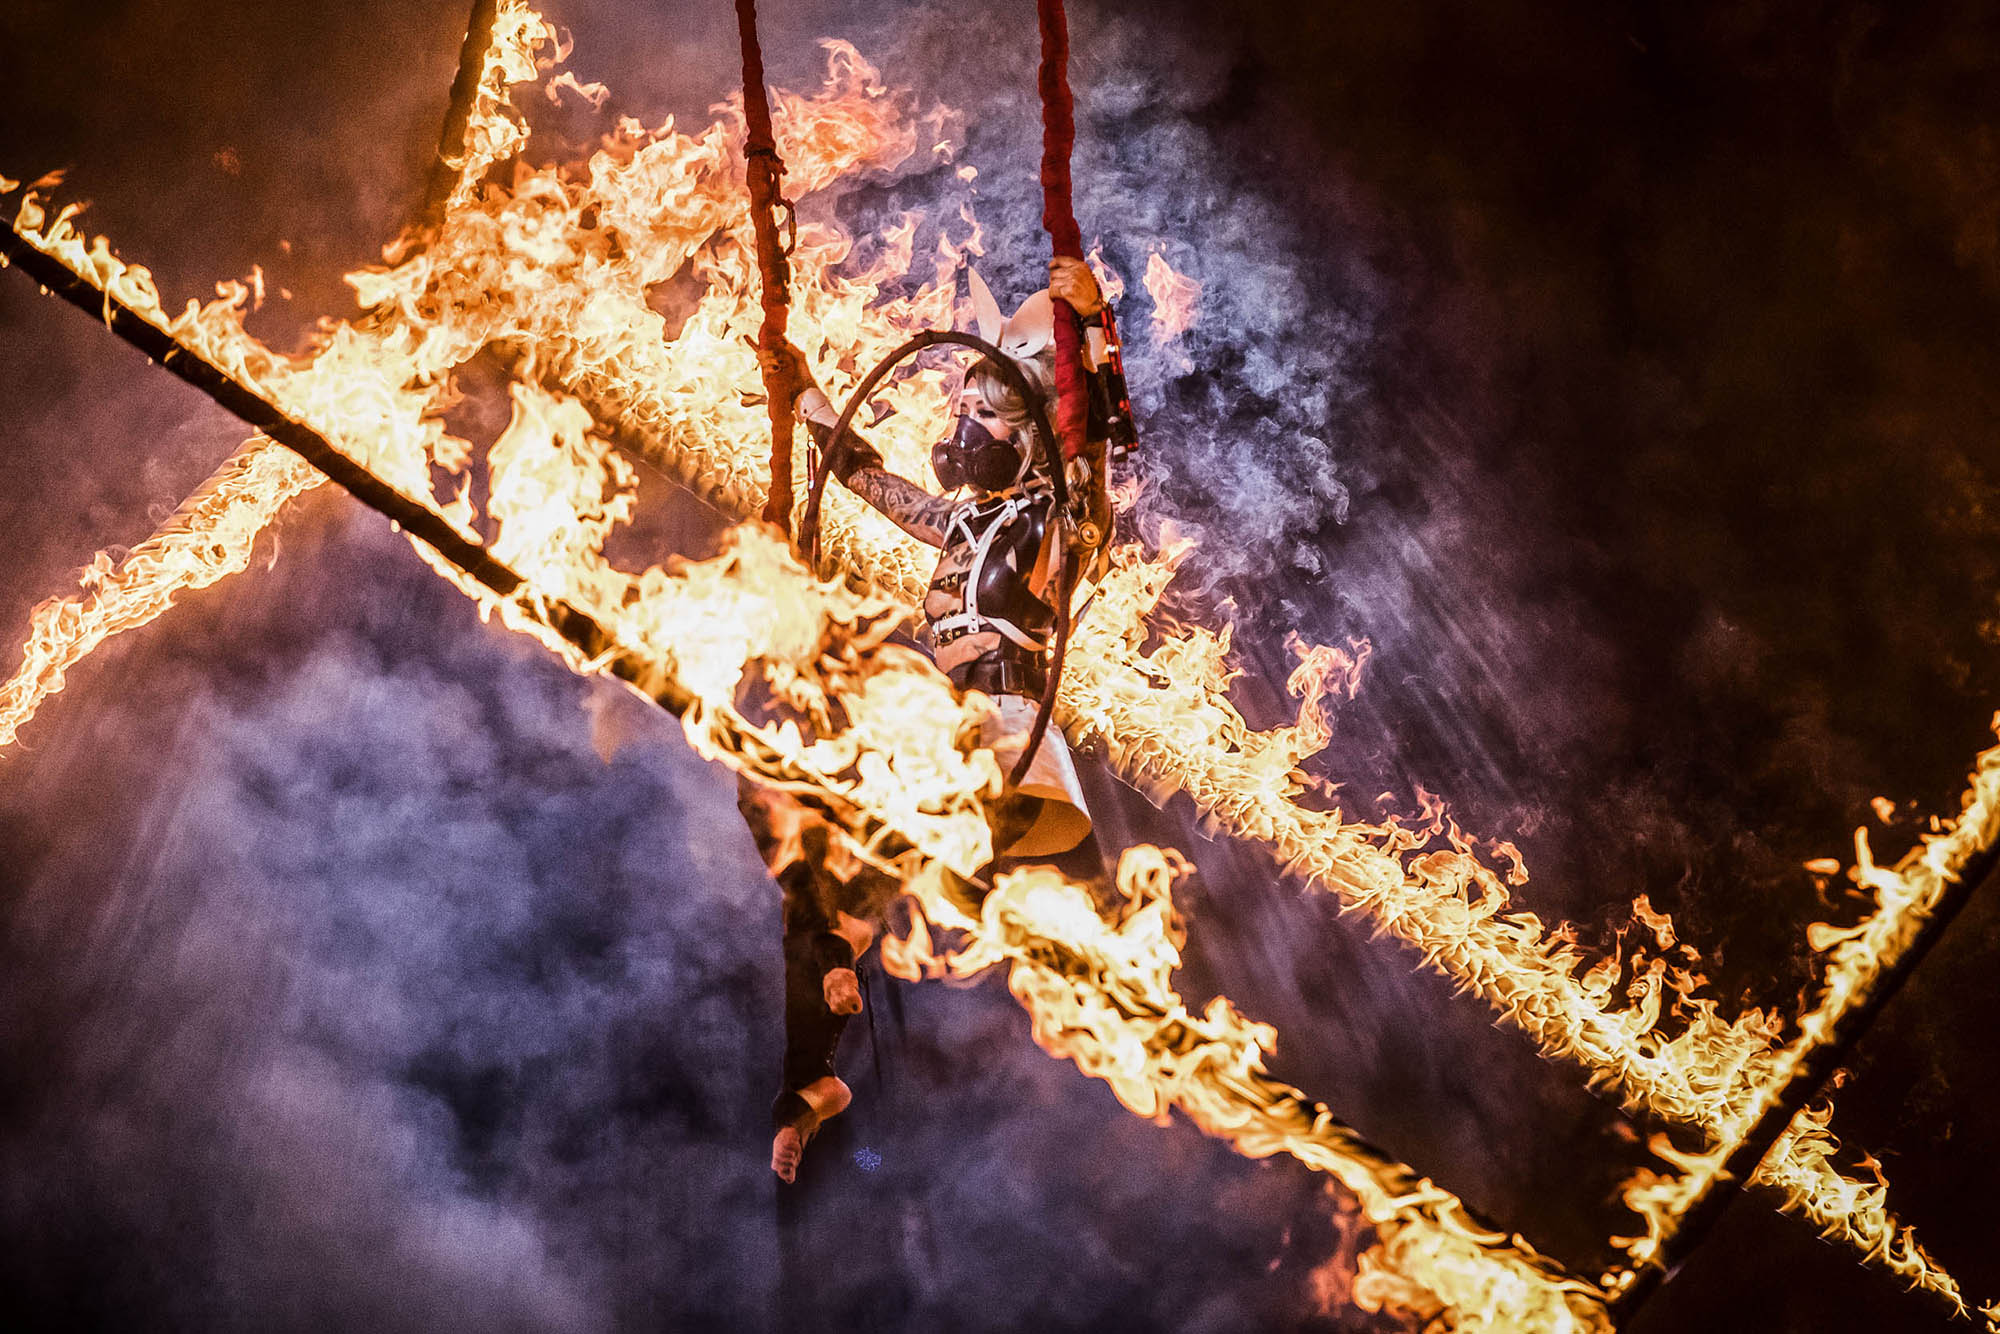 fuel girls fire yusura circus action sports photography sportfotografie flap photography fotograf philipp greindl photographer